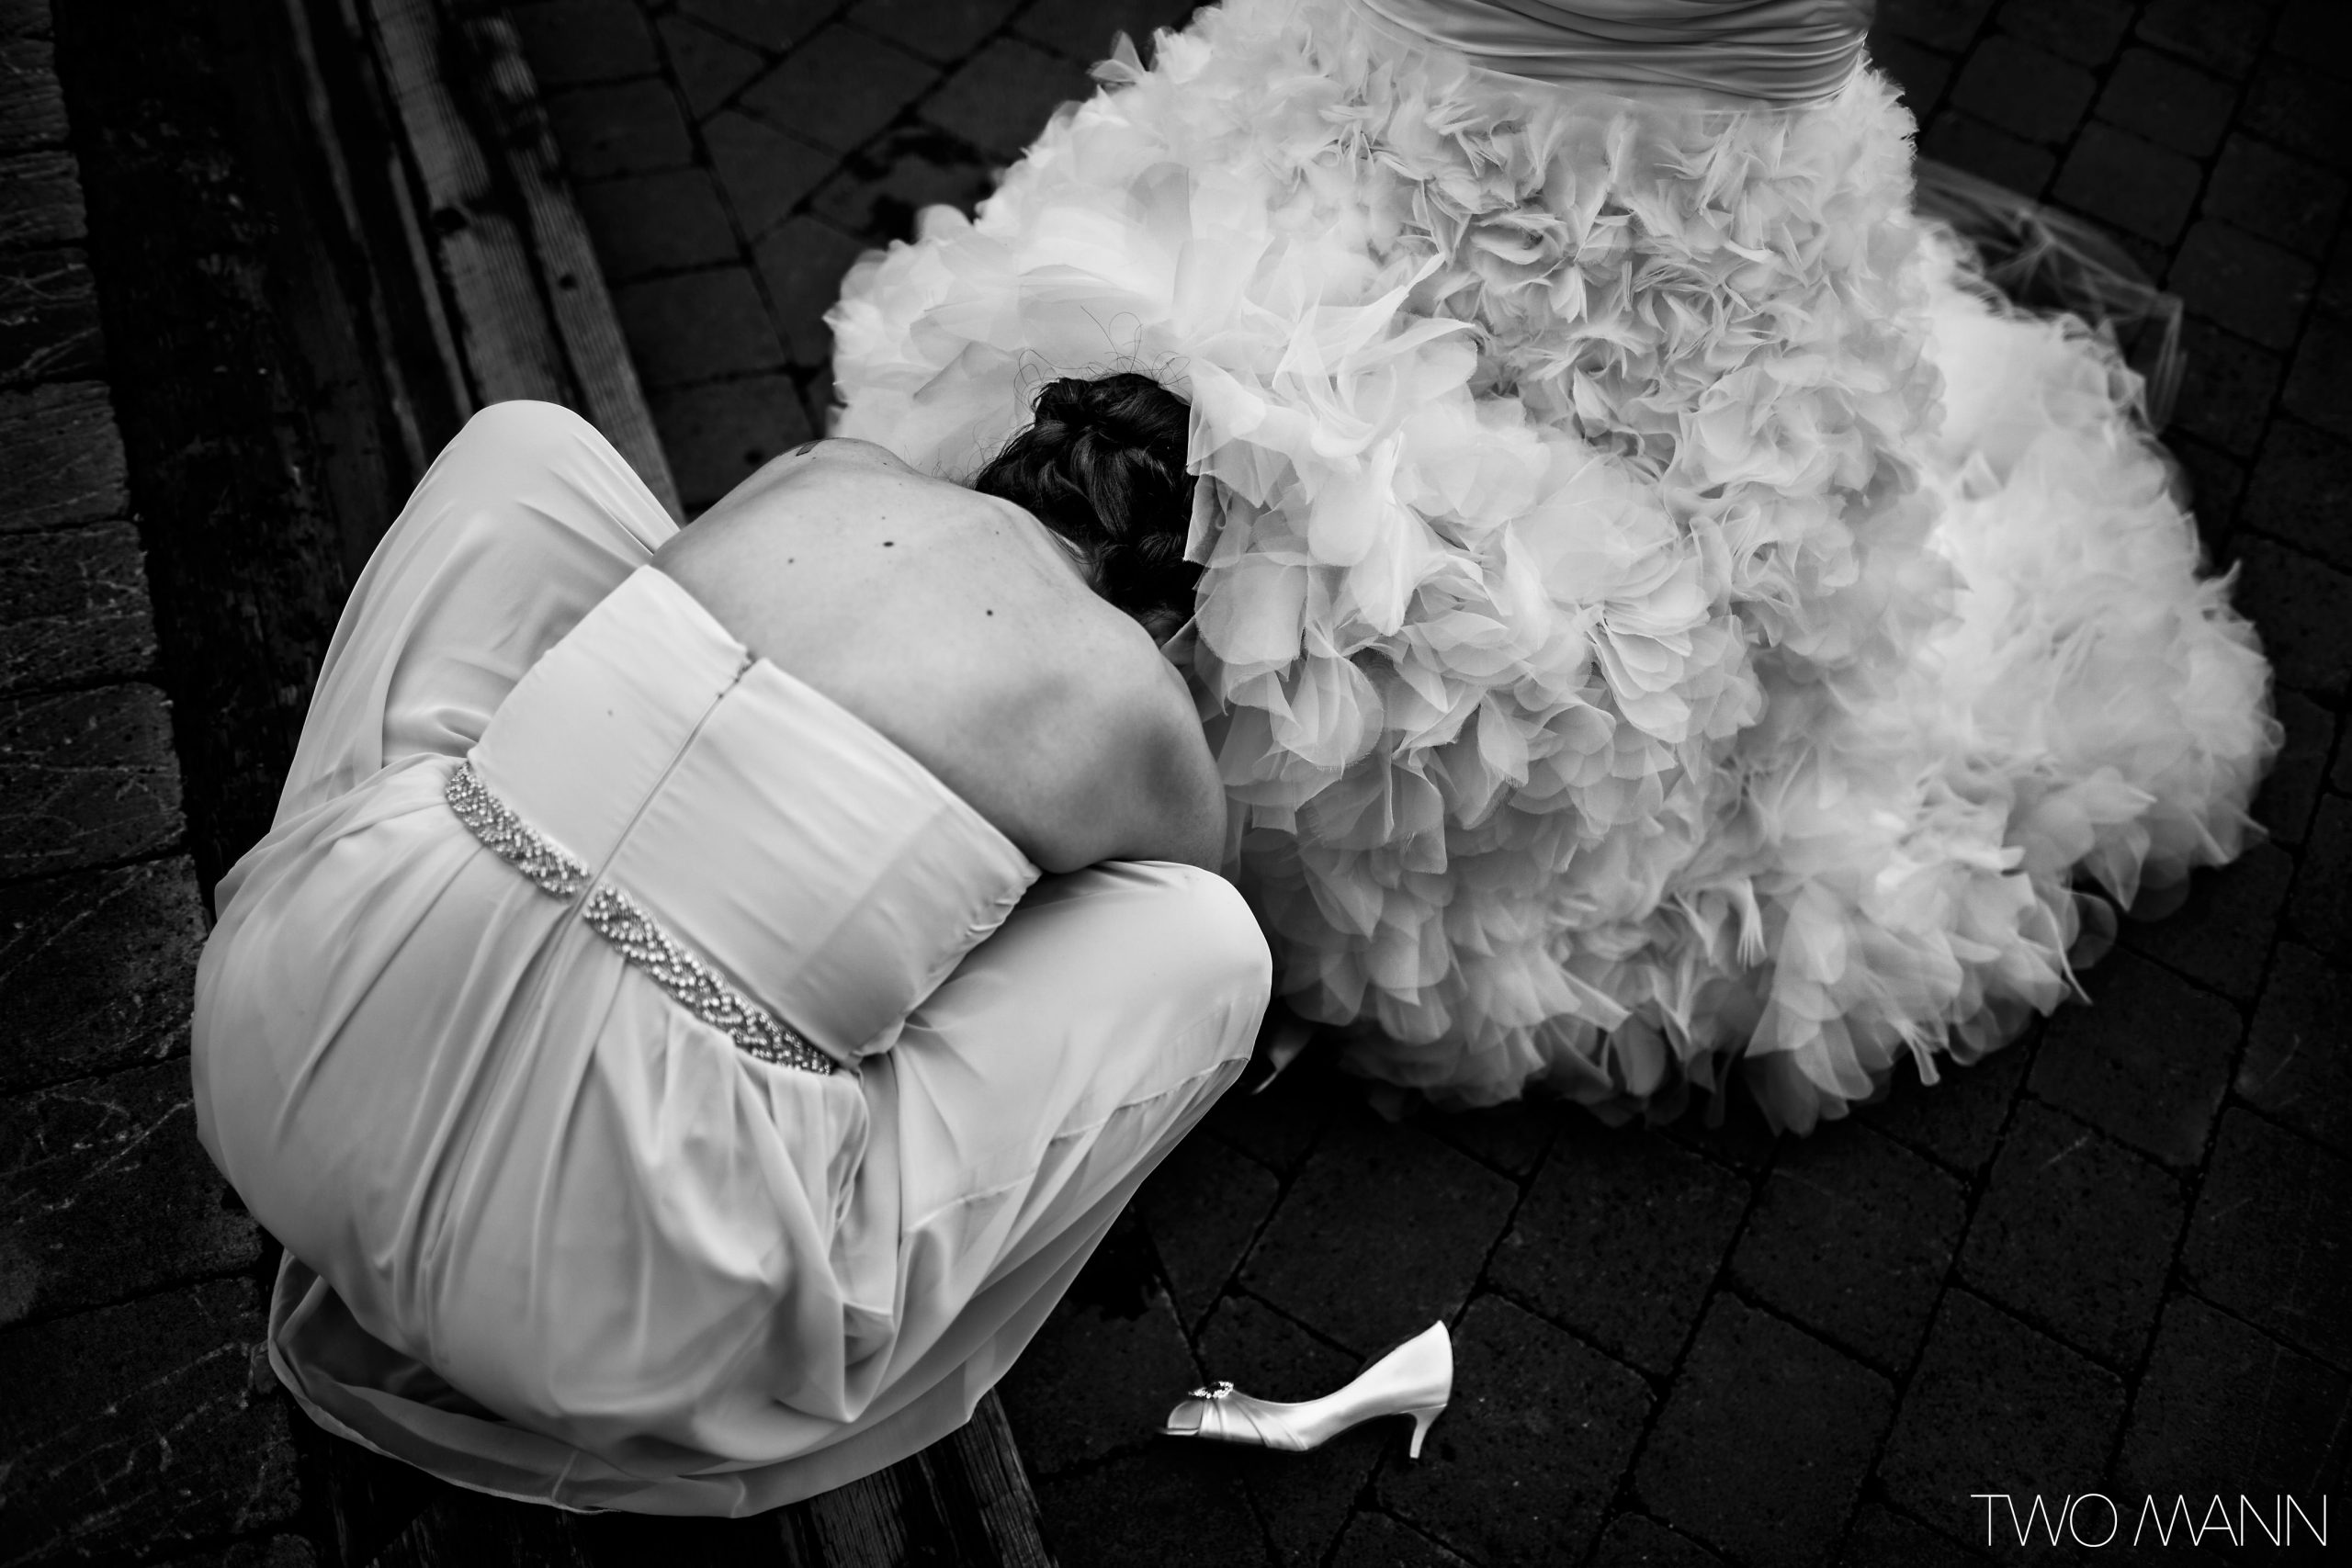 a bridesmaid help bride with her shoes under bride's dress hem